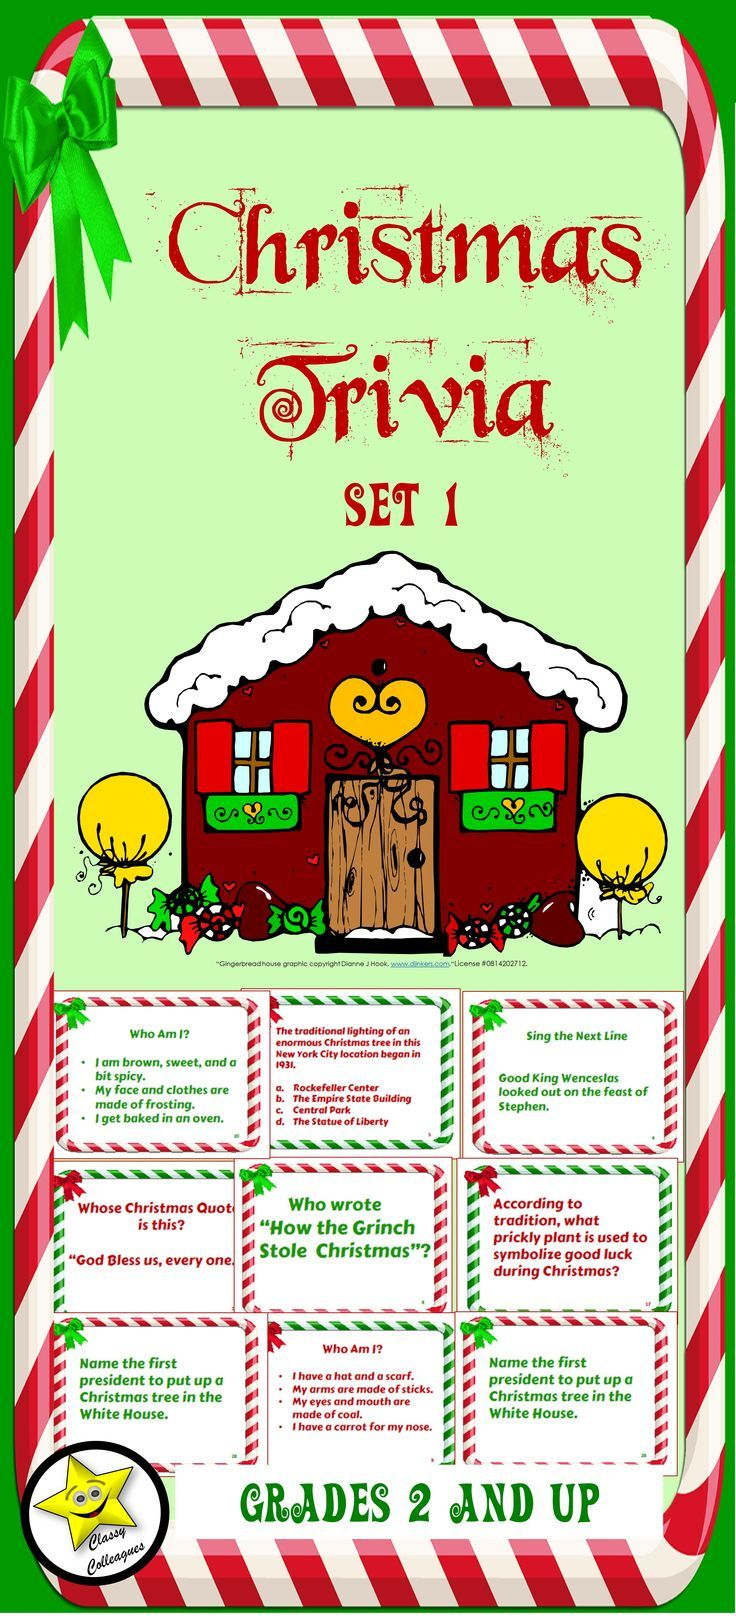 Christmas Trivia Facts.Christmas Trivia Set 1 Special Holidays With Tieplay